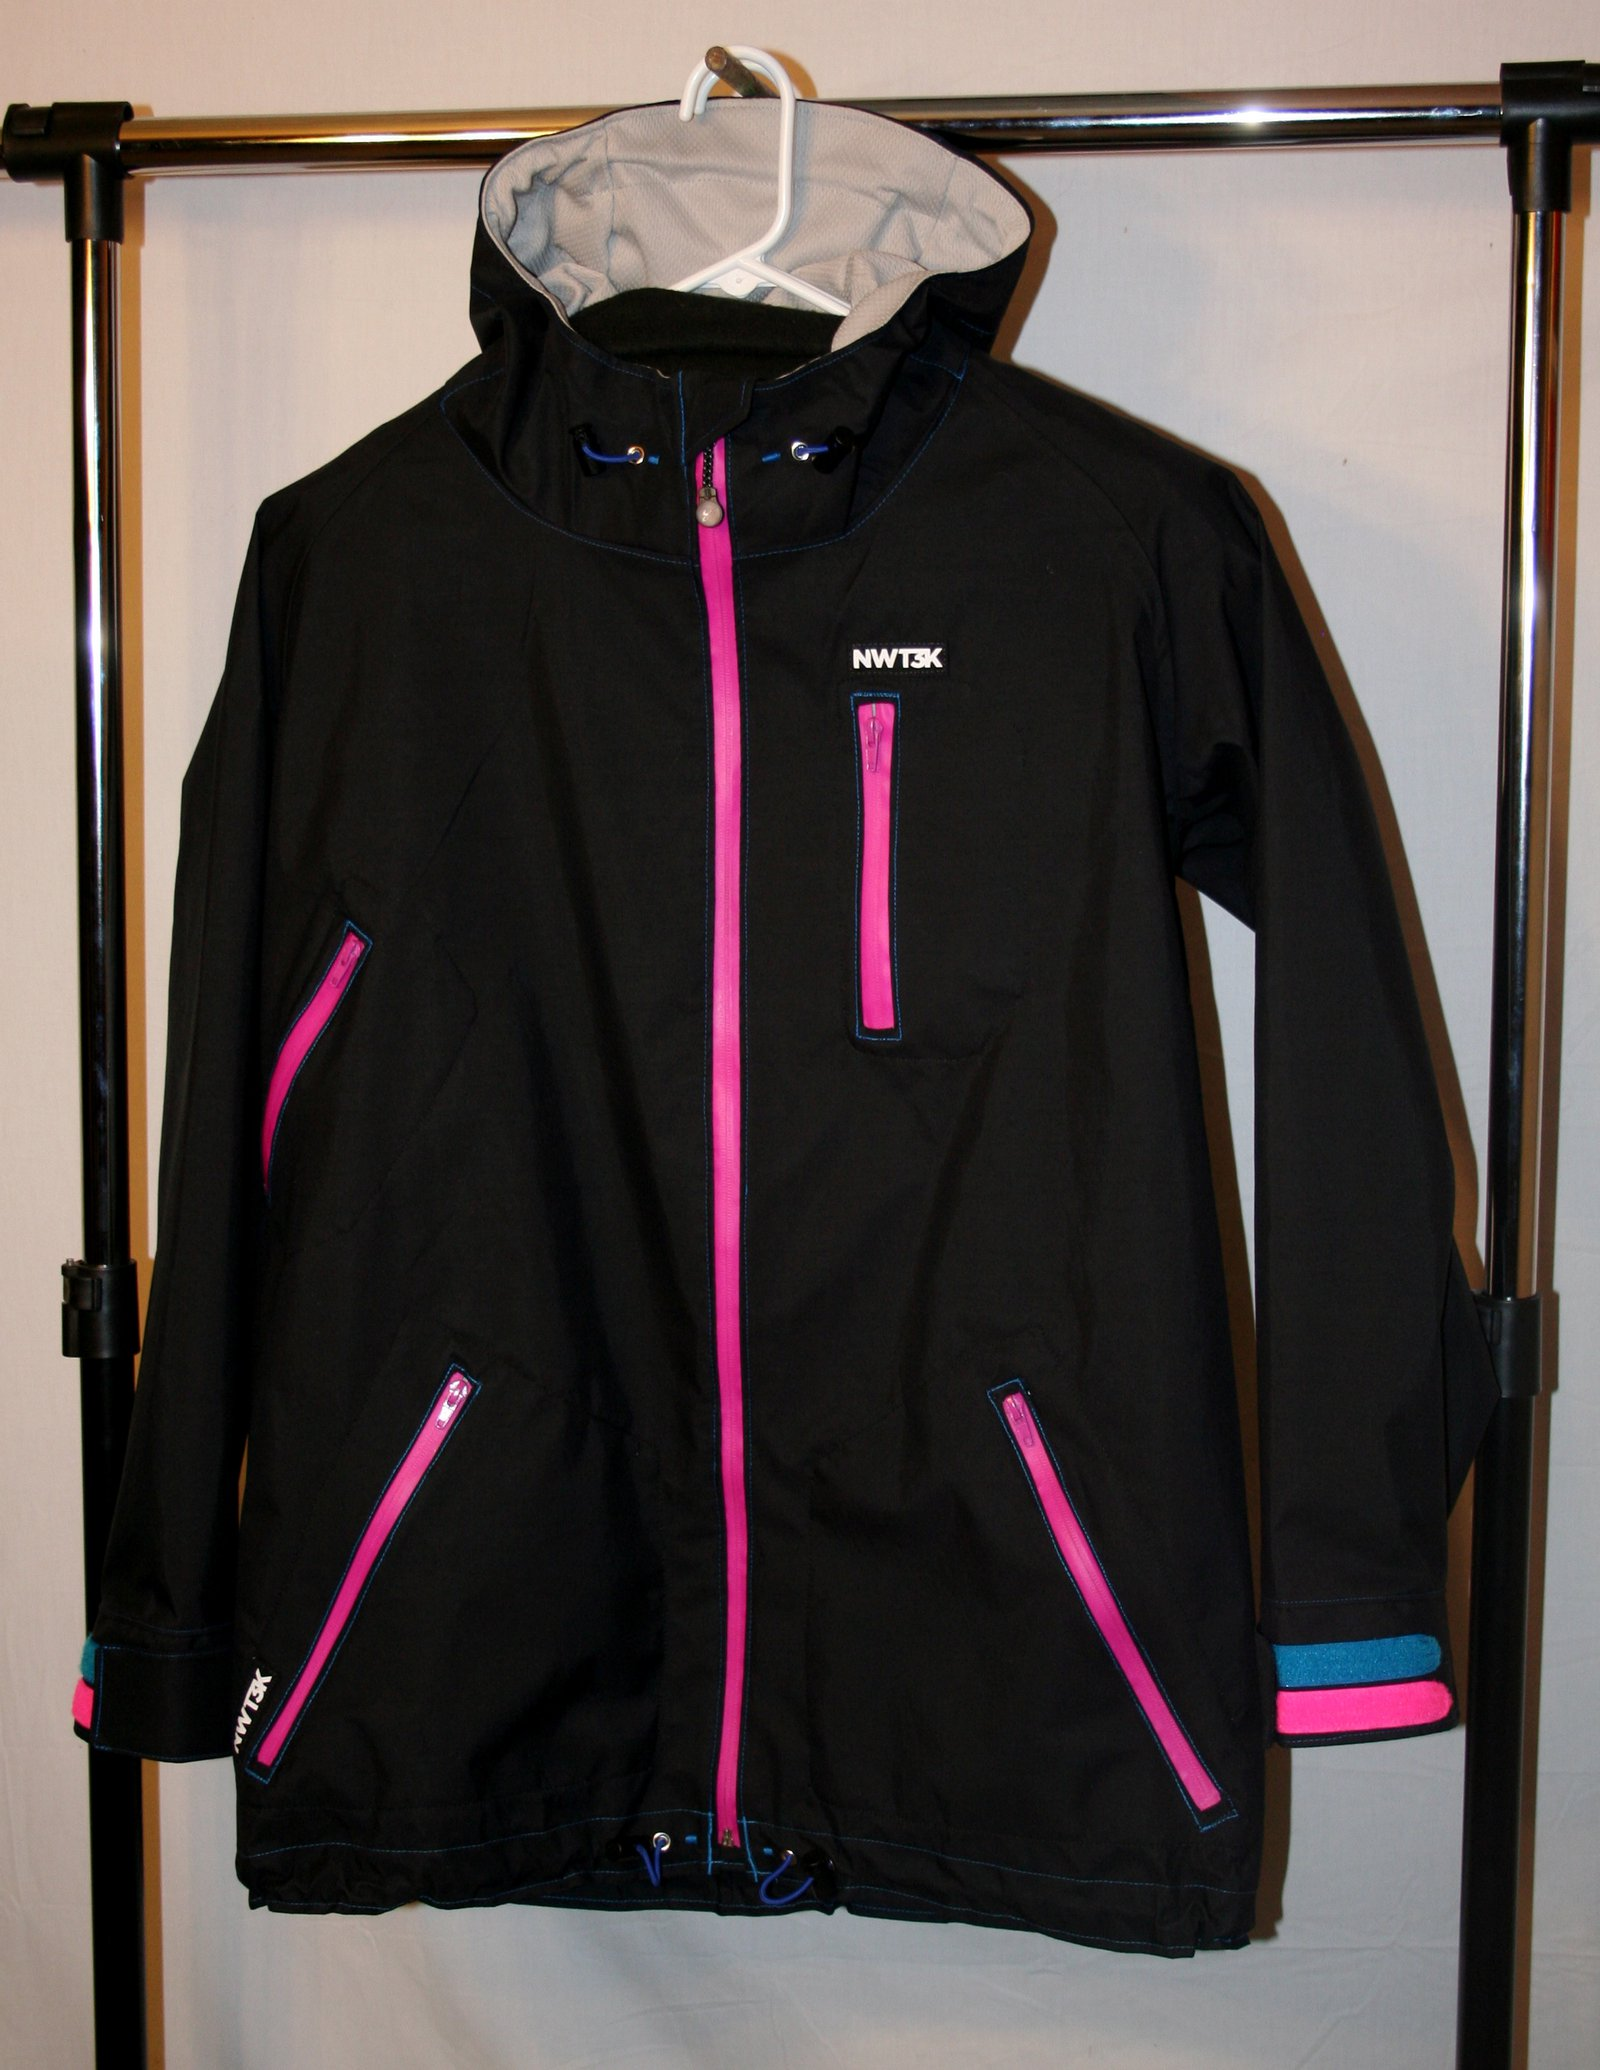 Black, pink zipper, pink & blue velcro